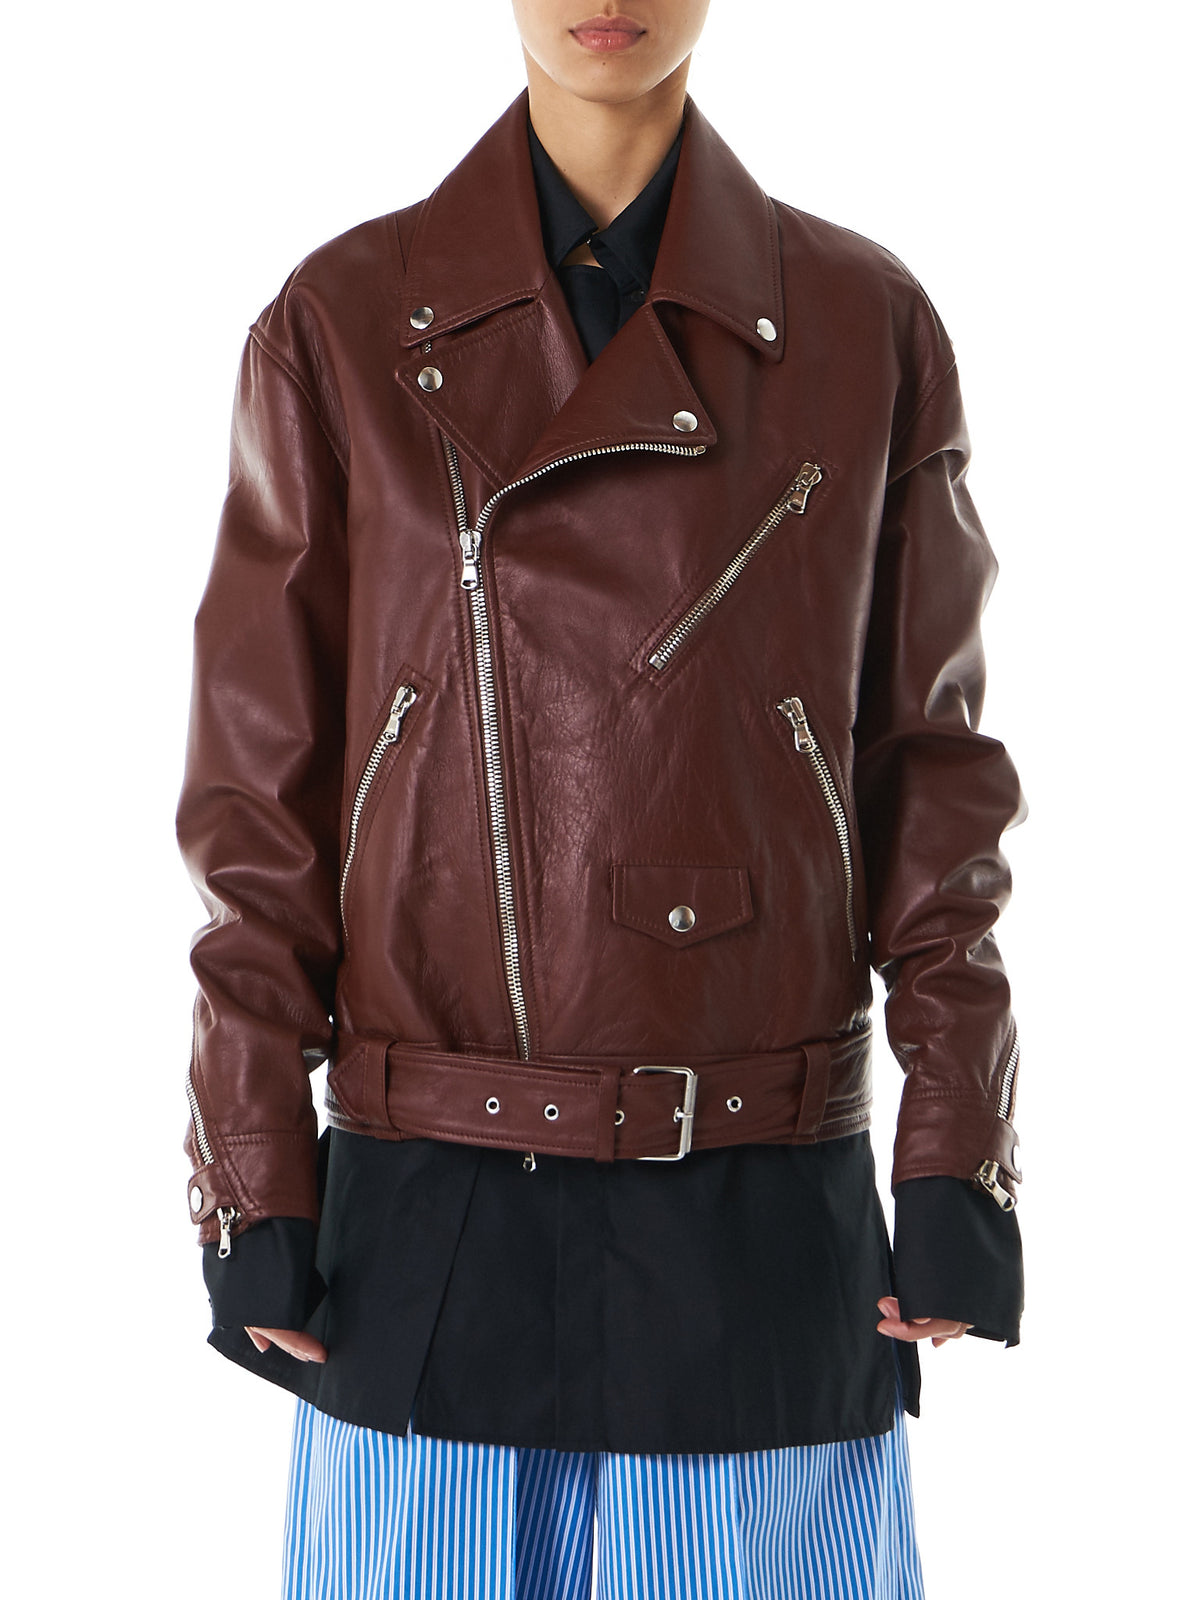 Oversized Biker Jacket (CO03-LEATHER-RICHBROWN) - H. Lorenzo